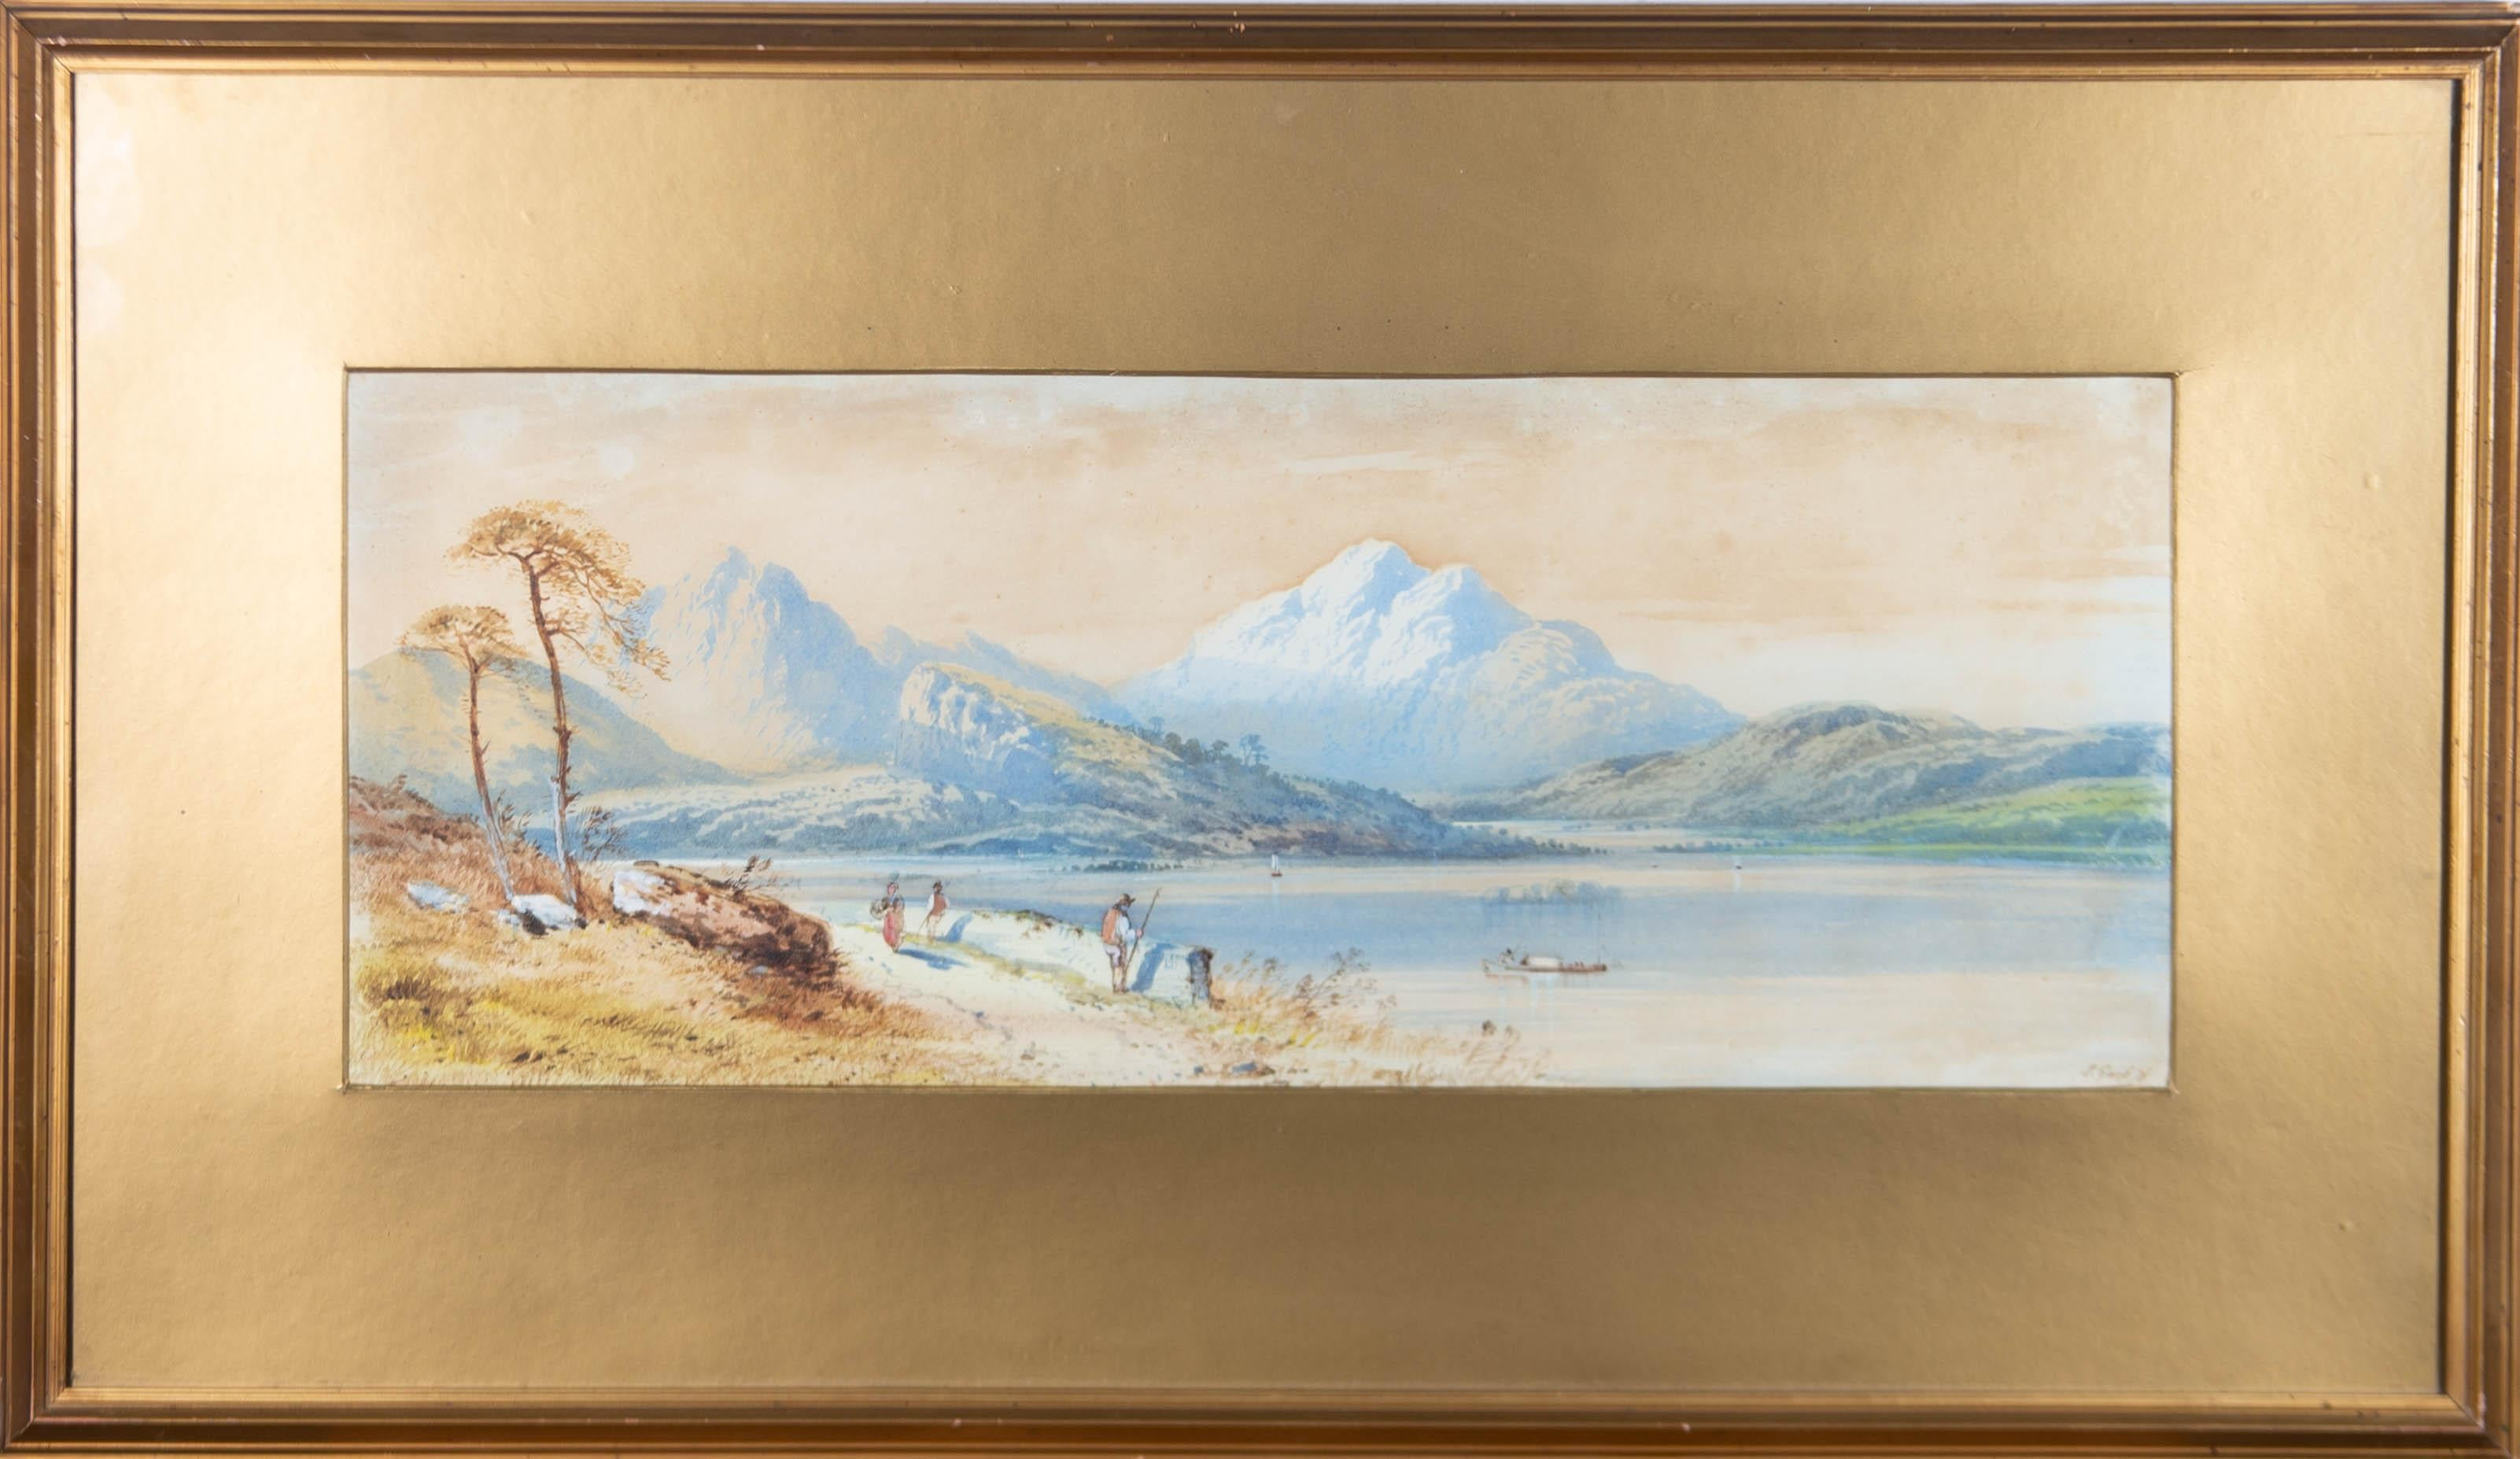 Edwin Earp (1851-1945) - Signed & Framed 1871 Watercolour, Summer by the River